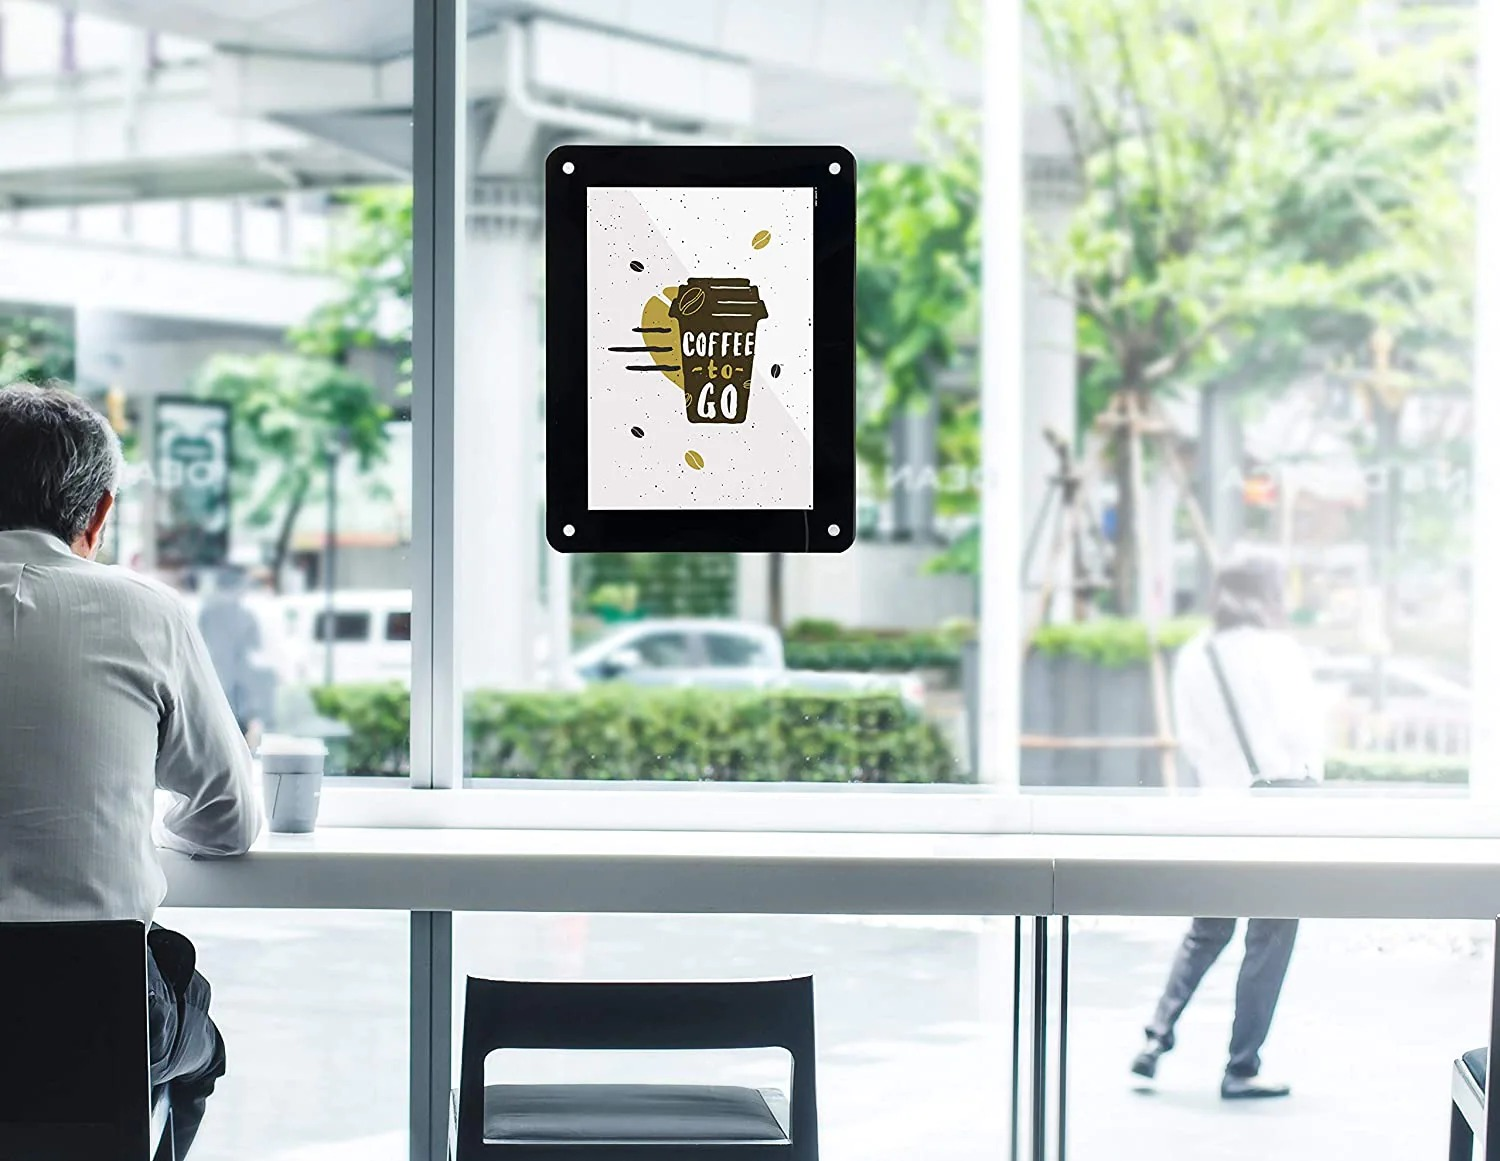 SECURIT PFW-A3-BL Posterframes - Windowsecurit® Window Poster Frame - Double Sided And Uv Resistant - 4 Suction Cups Included - A352,3X39,8X0,2Cm | 0,5Kgblack Pfw-A3-Bl